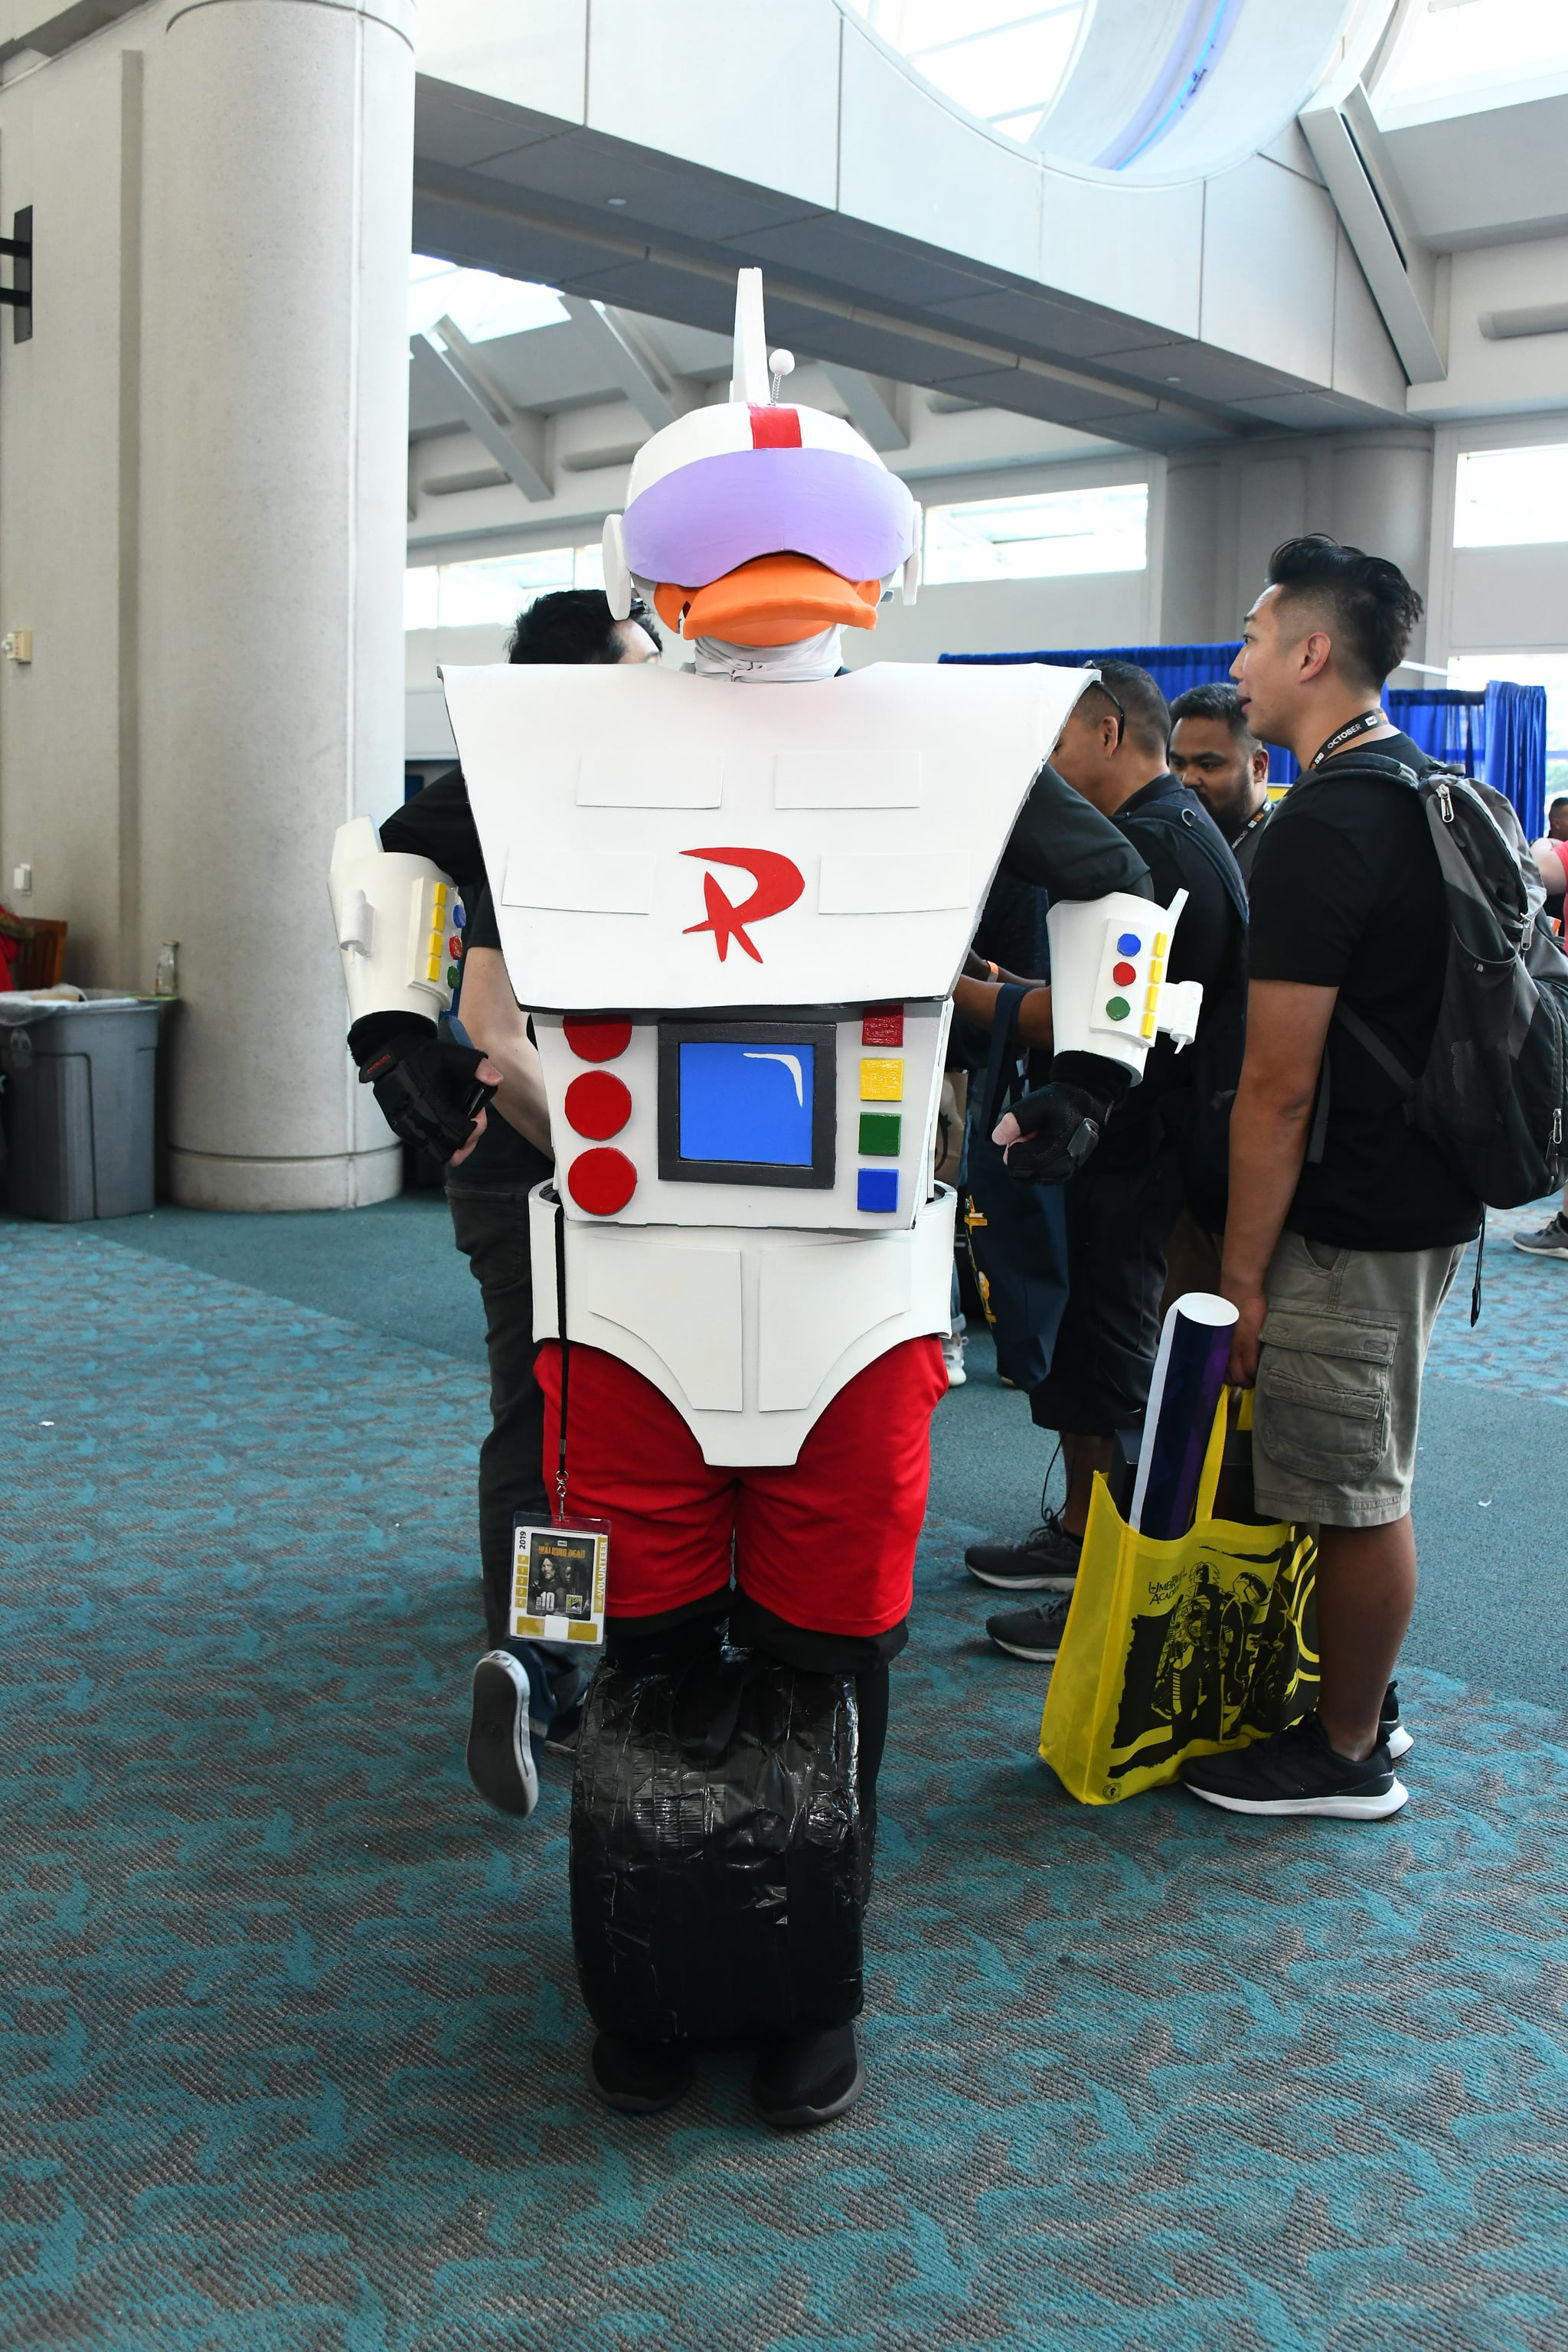 Gizmoduck From Darkwing Duck 140 Photos Of The Most Creative Cosplays From San Diego Comic Con 2019 Popsugar Entertainment Photo 3 Суперкряк уткоробот қара плащ өмірде! gizmoduck from darkwing duck 140